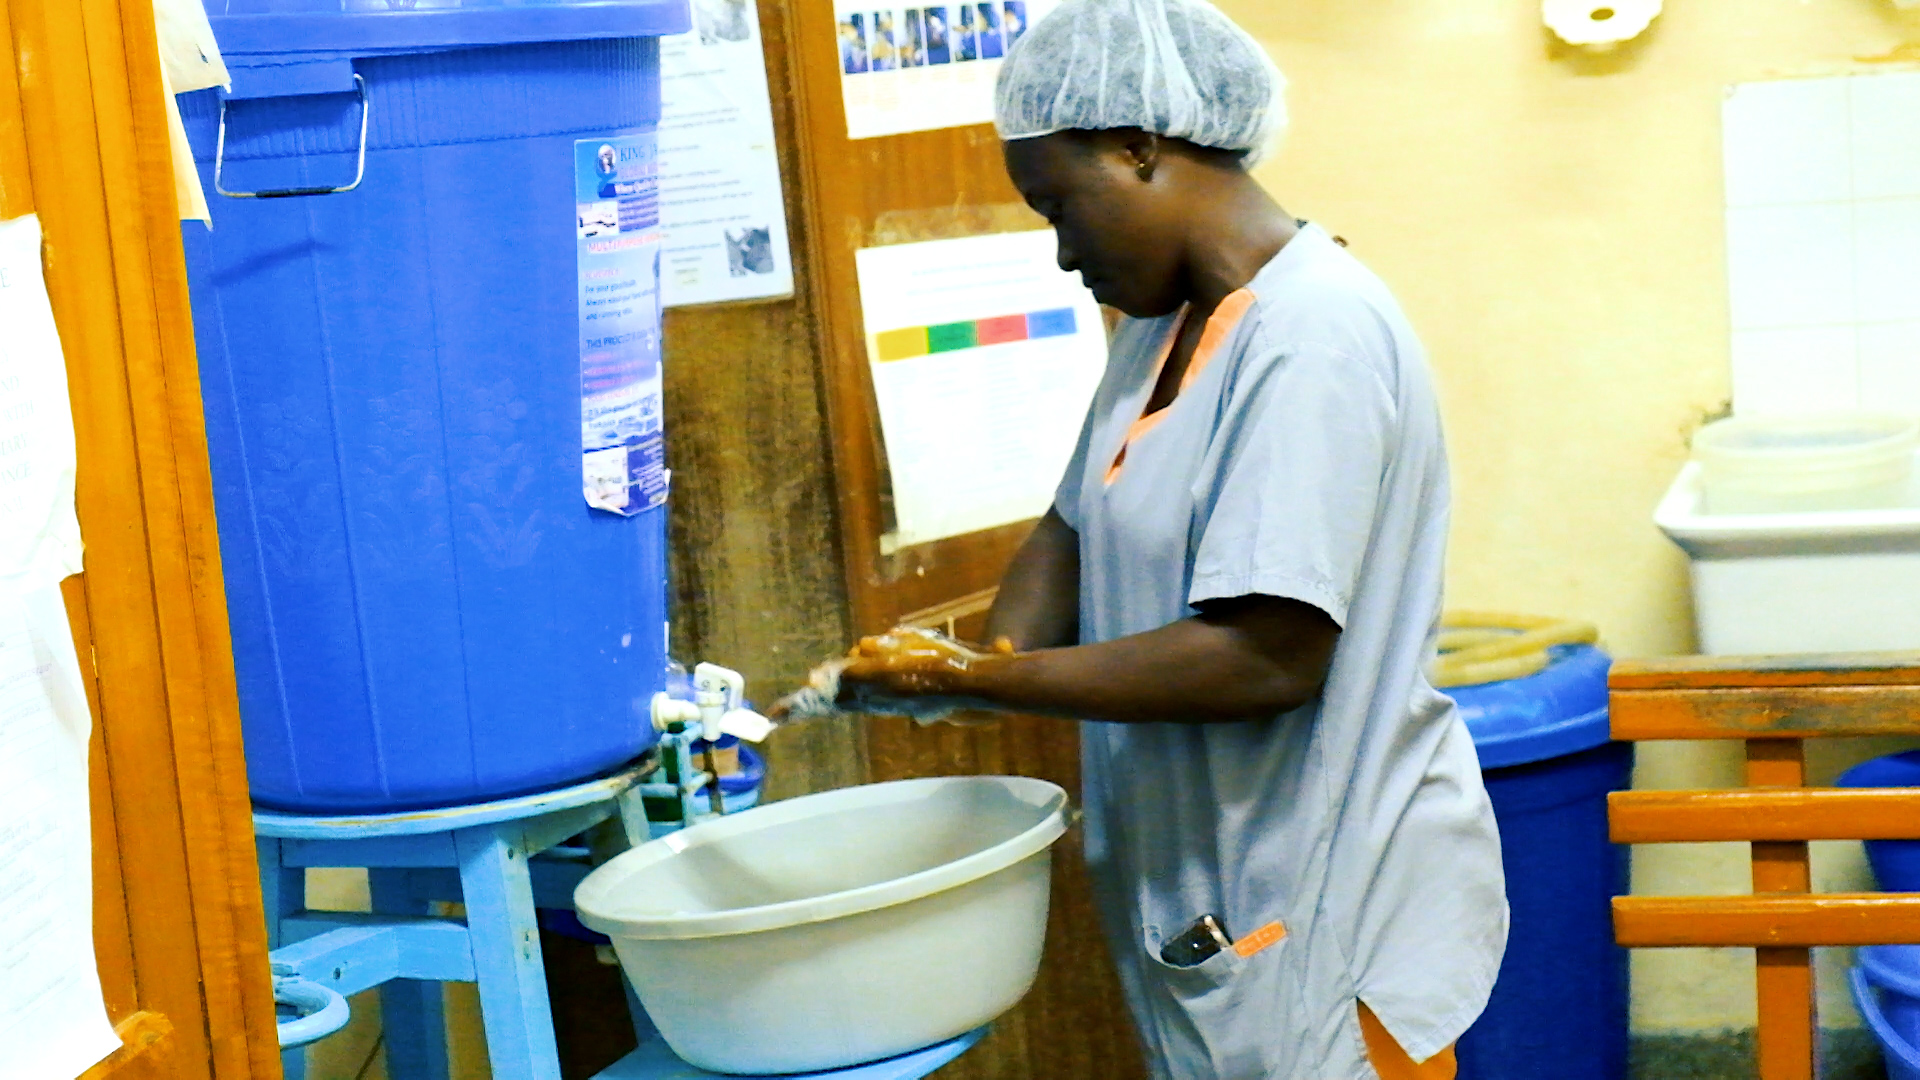 A healthcare worker washing her hands